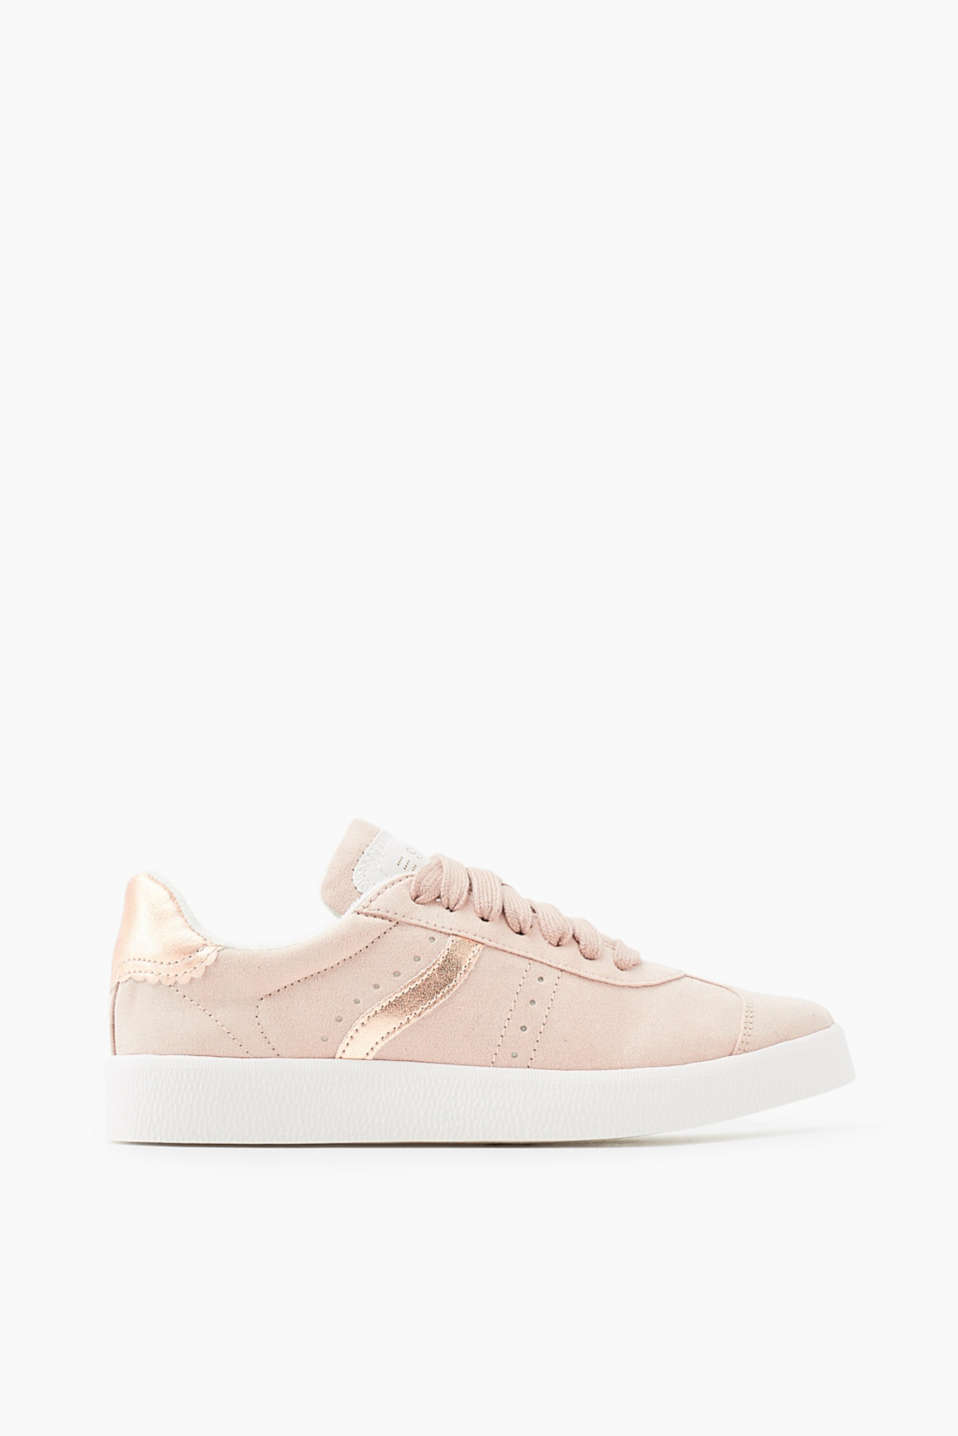 With a rubber sole: lace-up trainers in faux suede